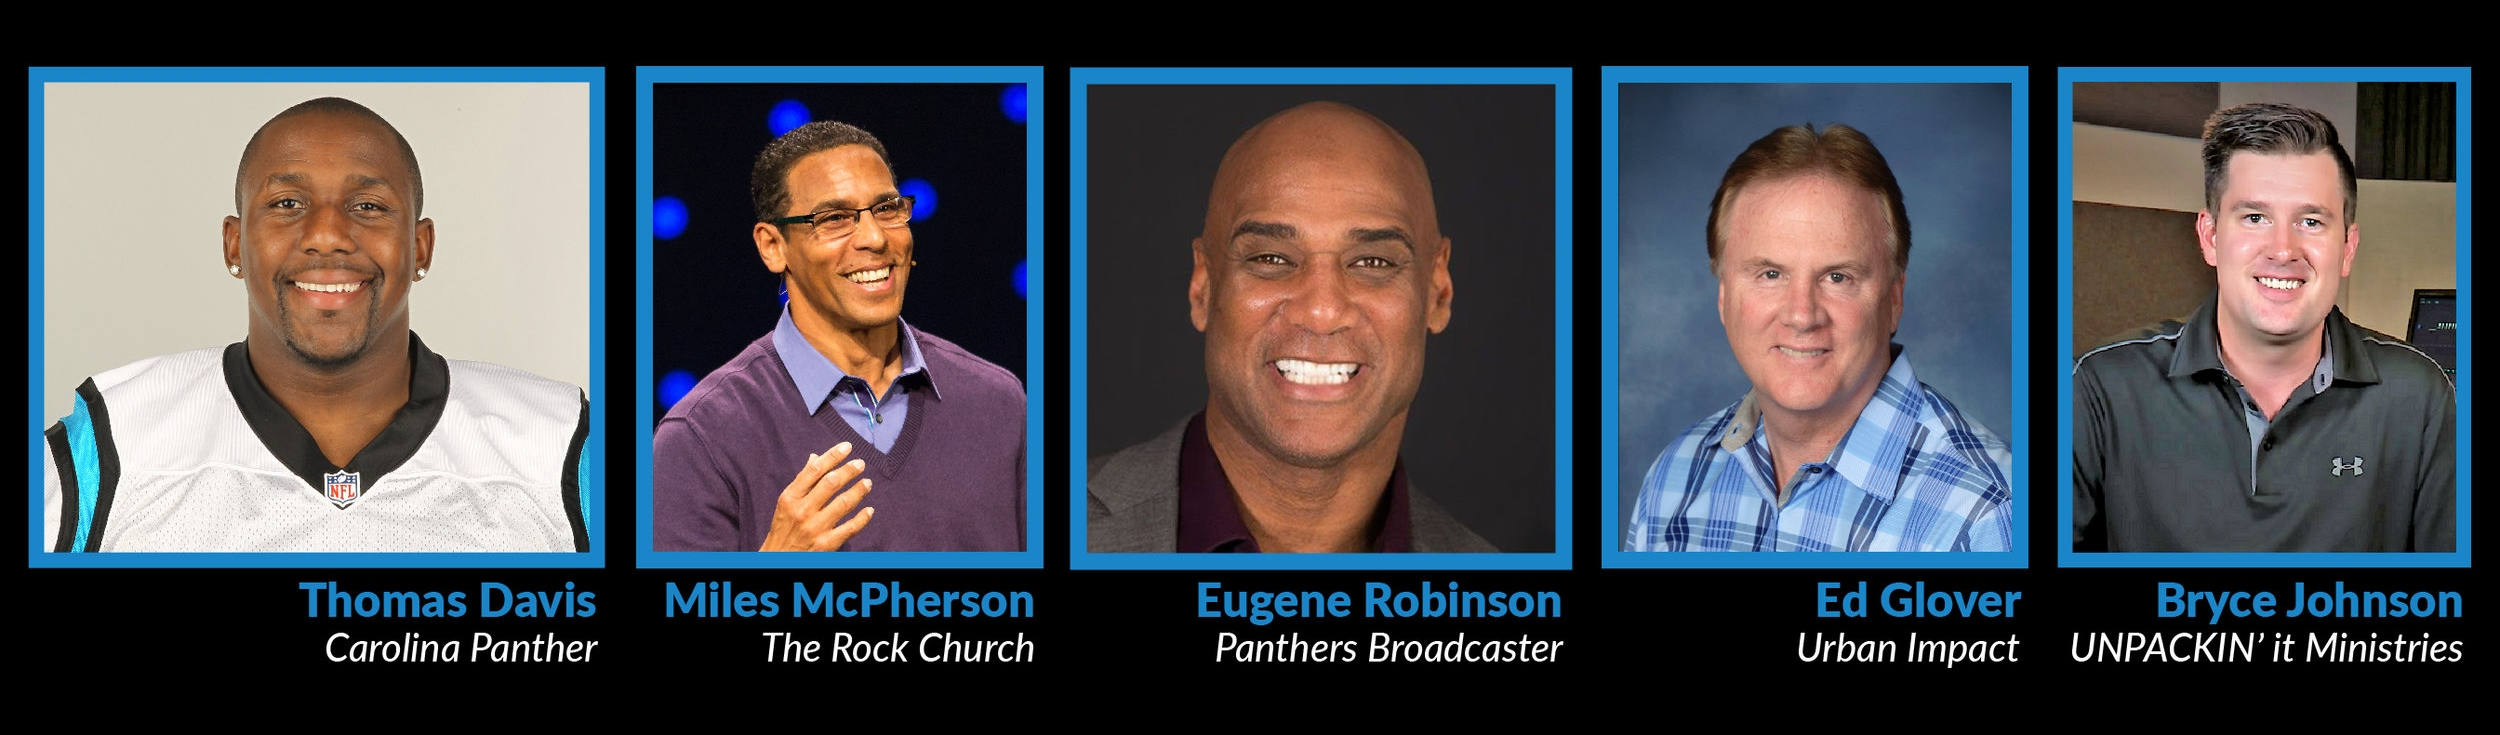 Featured speakers at the  ManUp  conference on June 2 are Carolina Panther Thomas Davis; Miles McPherson of The Rock Church; Panthers Broadcaster Eugene Robinson; Urban Impact's Ed Glover; and Bryce Johnson of UNPACKIN' It Ministries.